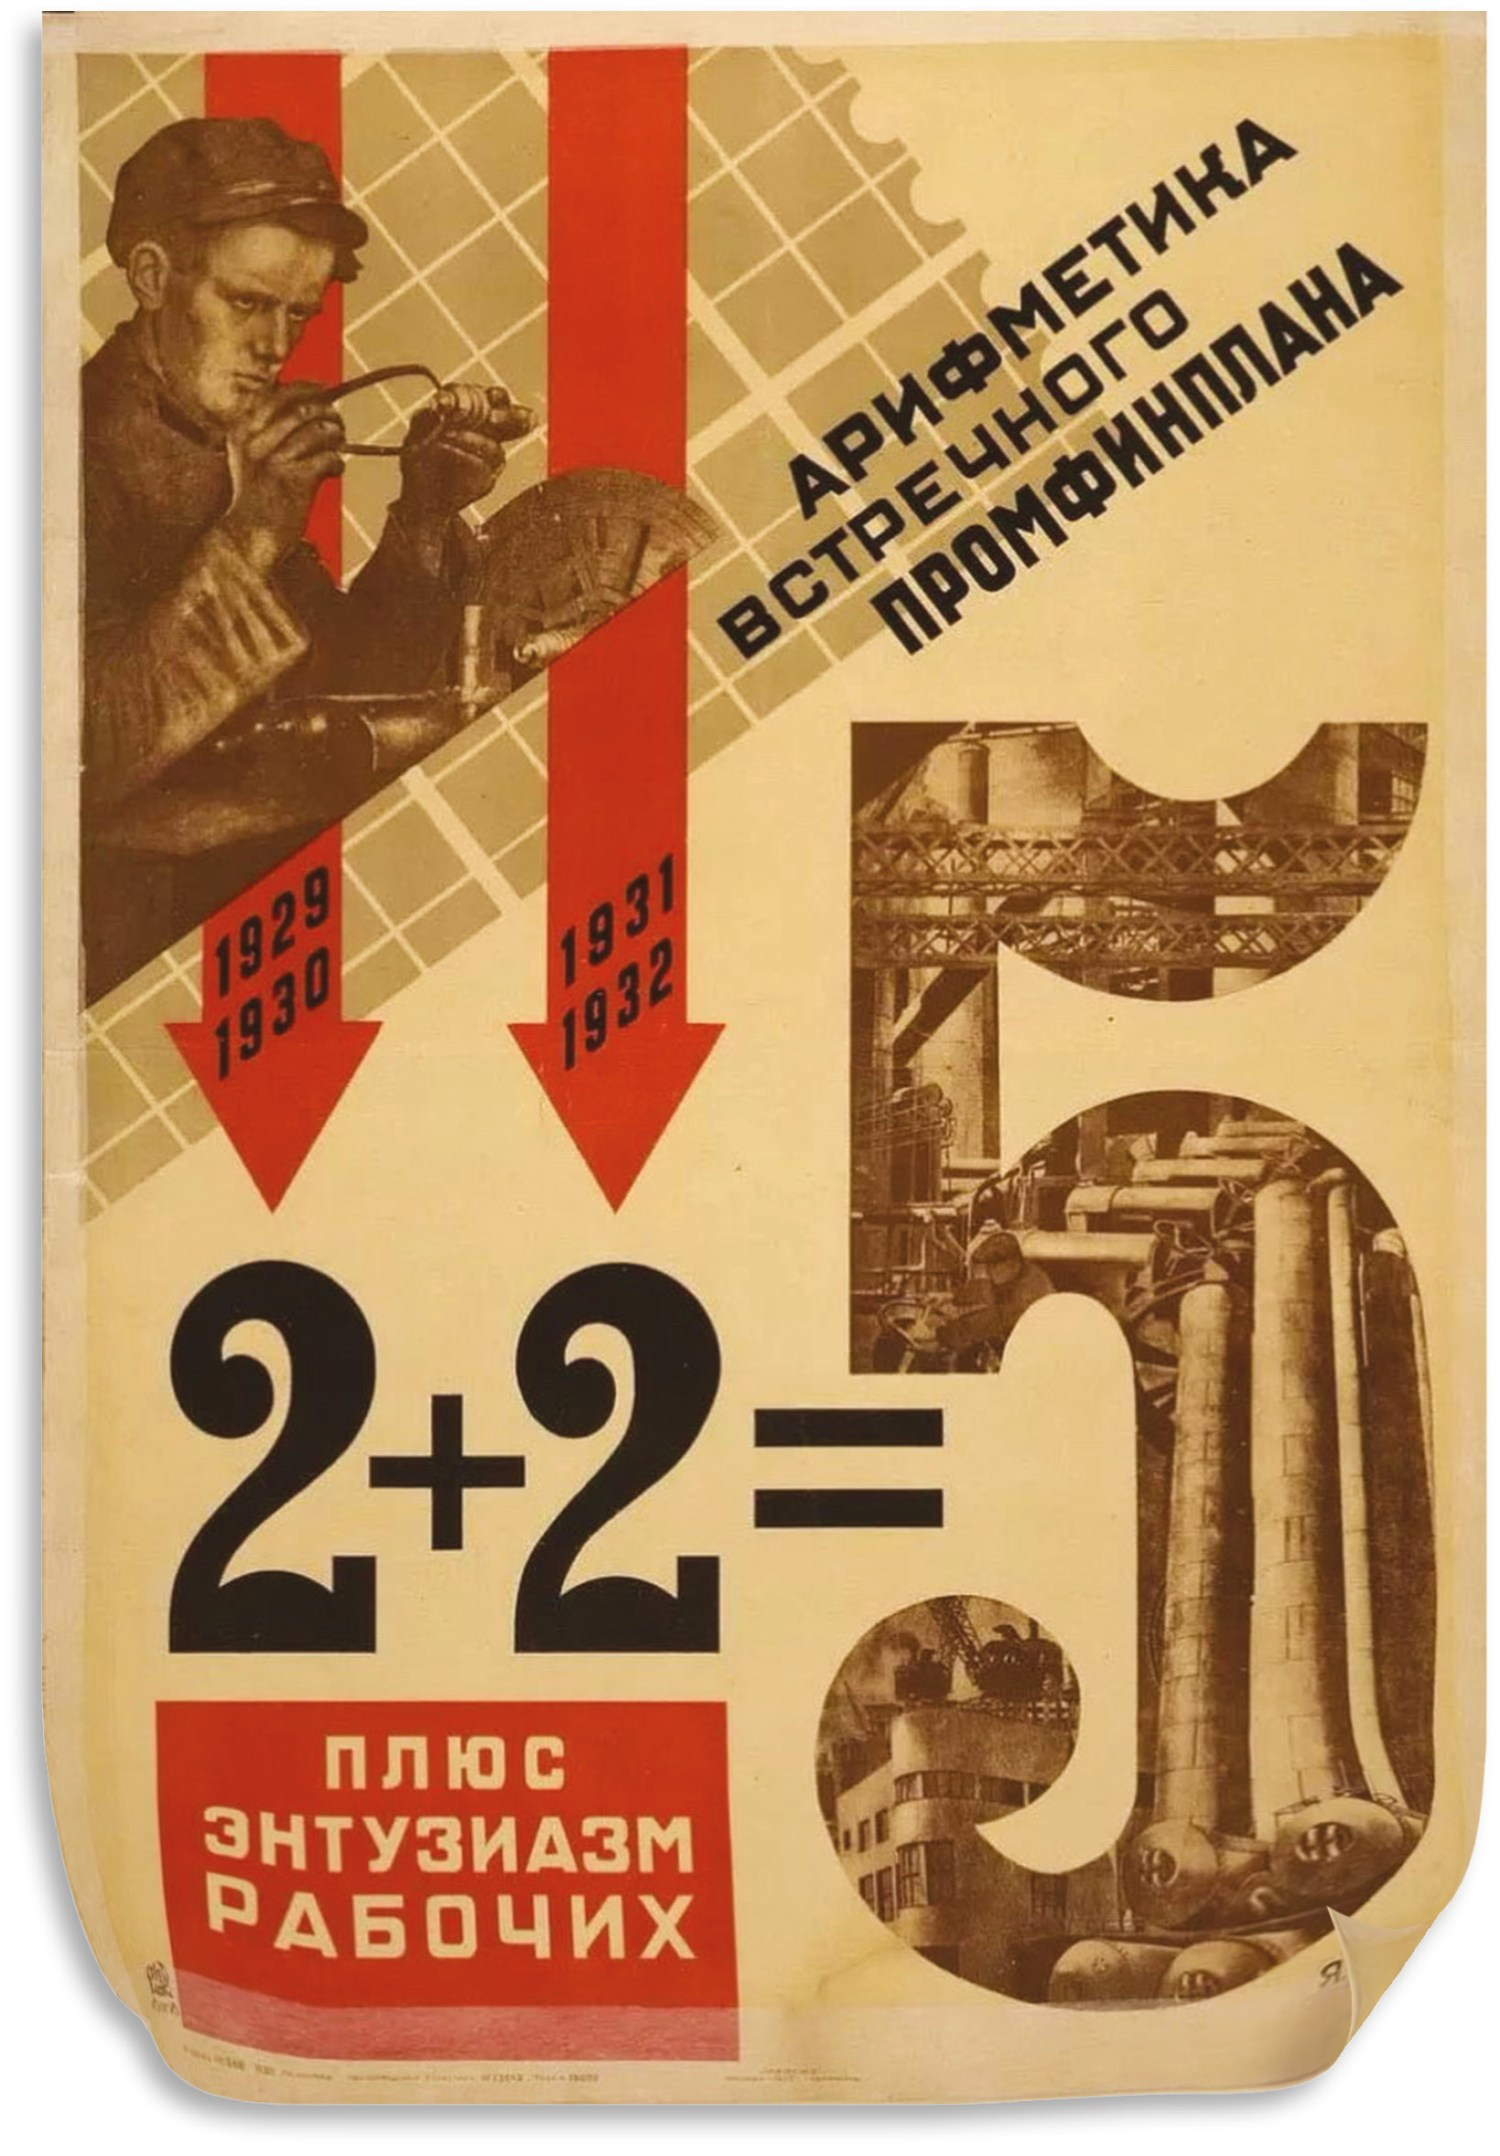 ABOVE A Five-Year Plan poster from 1931. It gives full expression to the breakneck speed of Russia's forced industrialisation. This was the basis for the creation of what had become, by 1935, the most powerful army in the world.